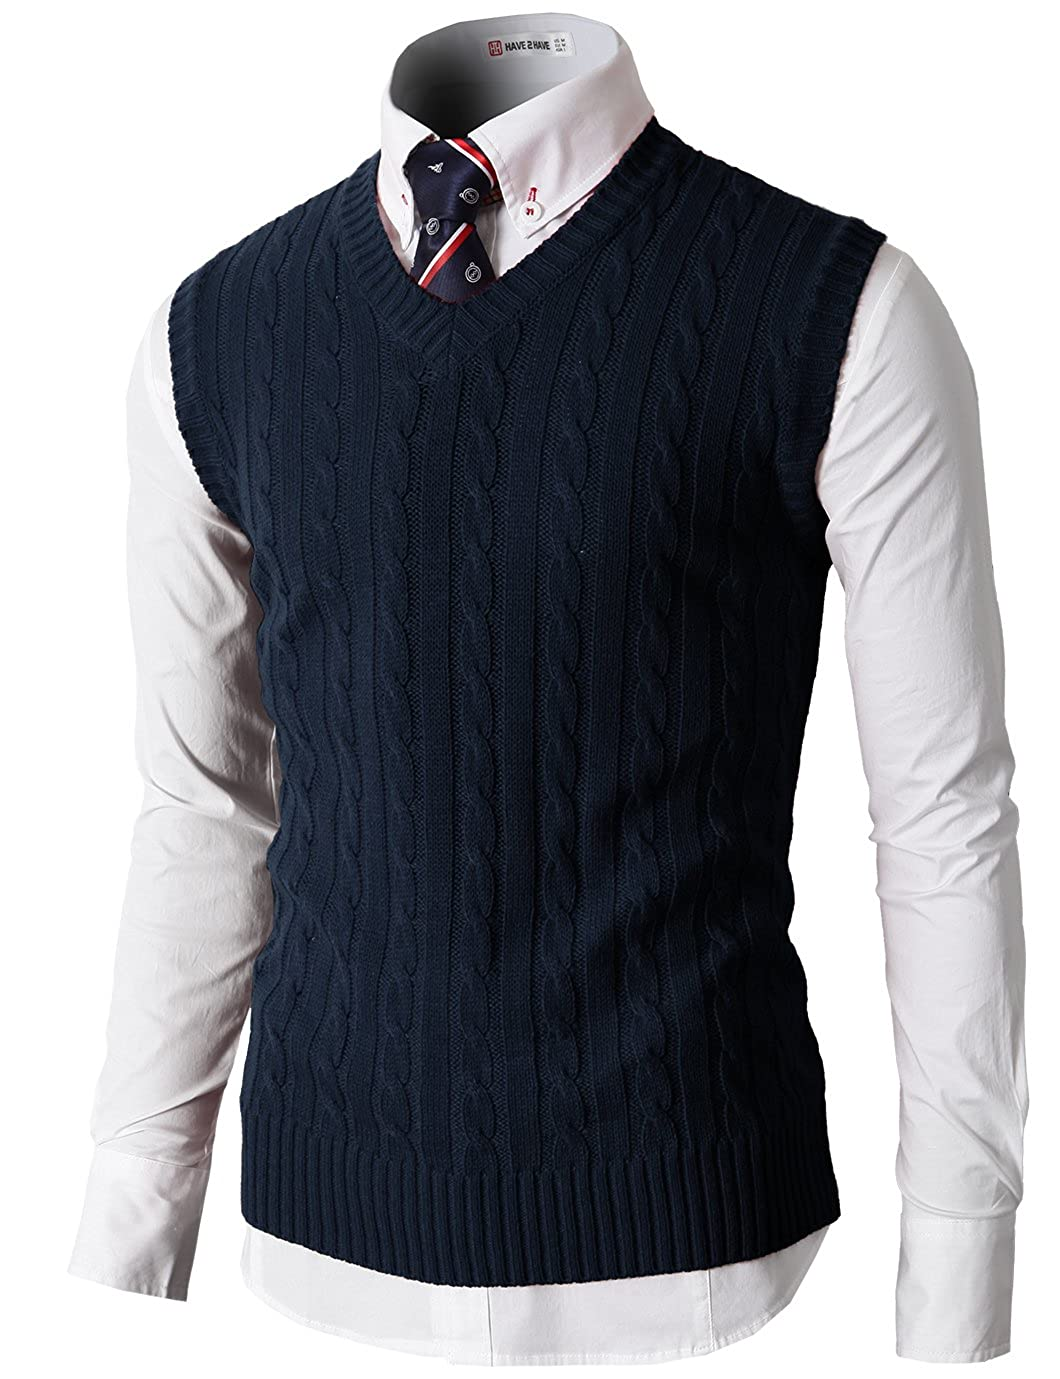 H2H Mens Casual Slim Fit Knitted Pullover Sweater Vests V-Neck Cable Patterned Solid Colors